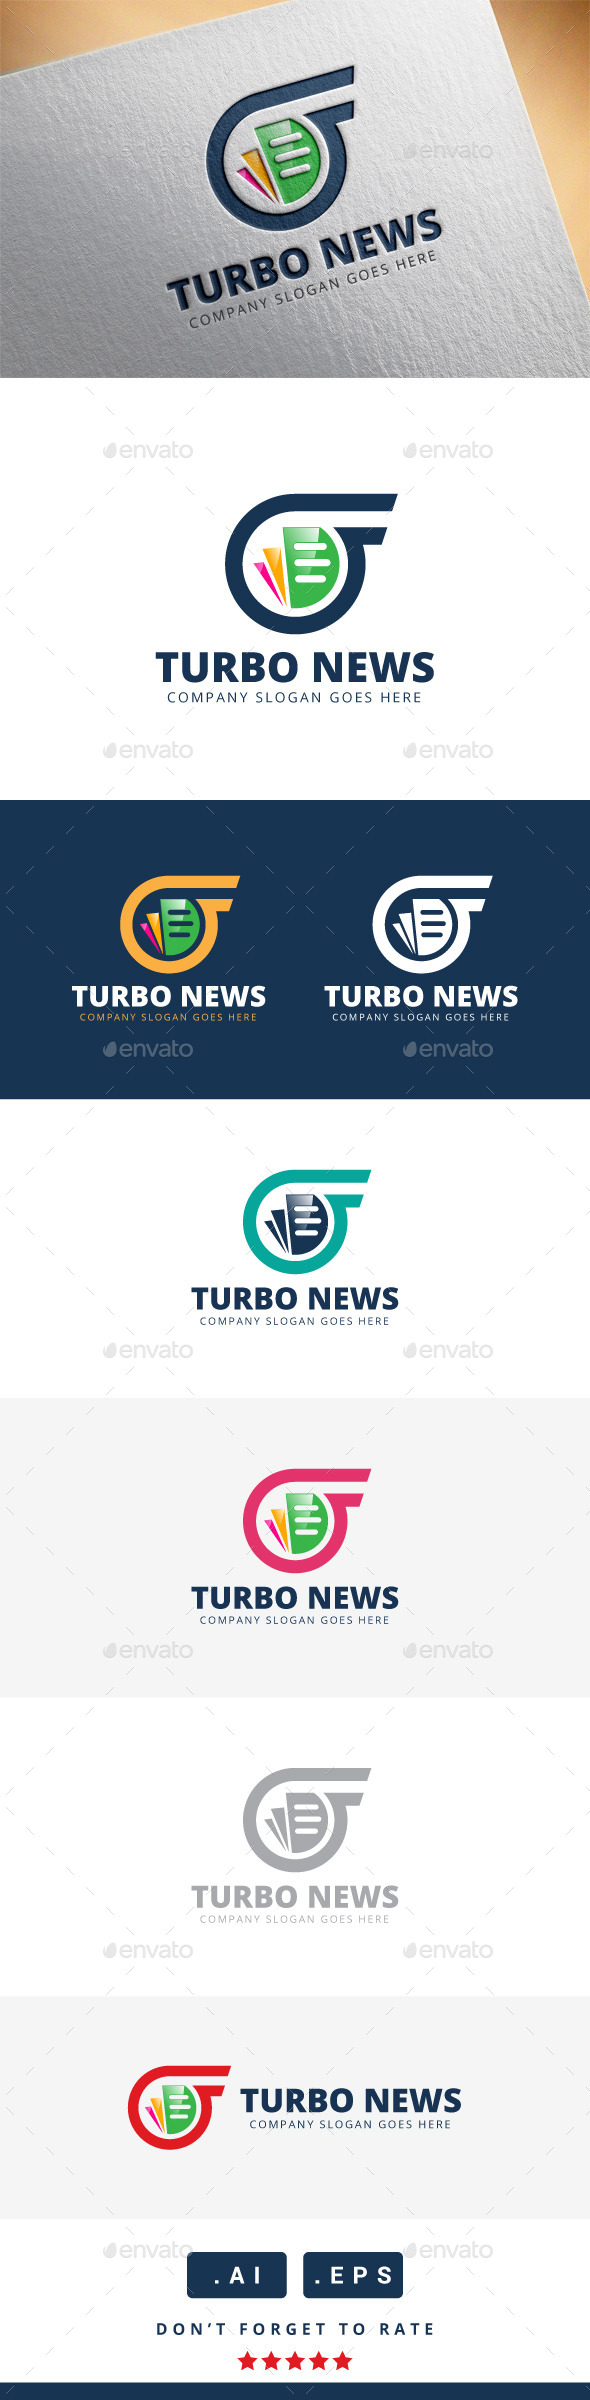 GraphicRiver Turbo News Logo 11340044